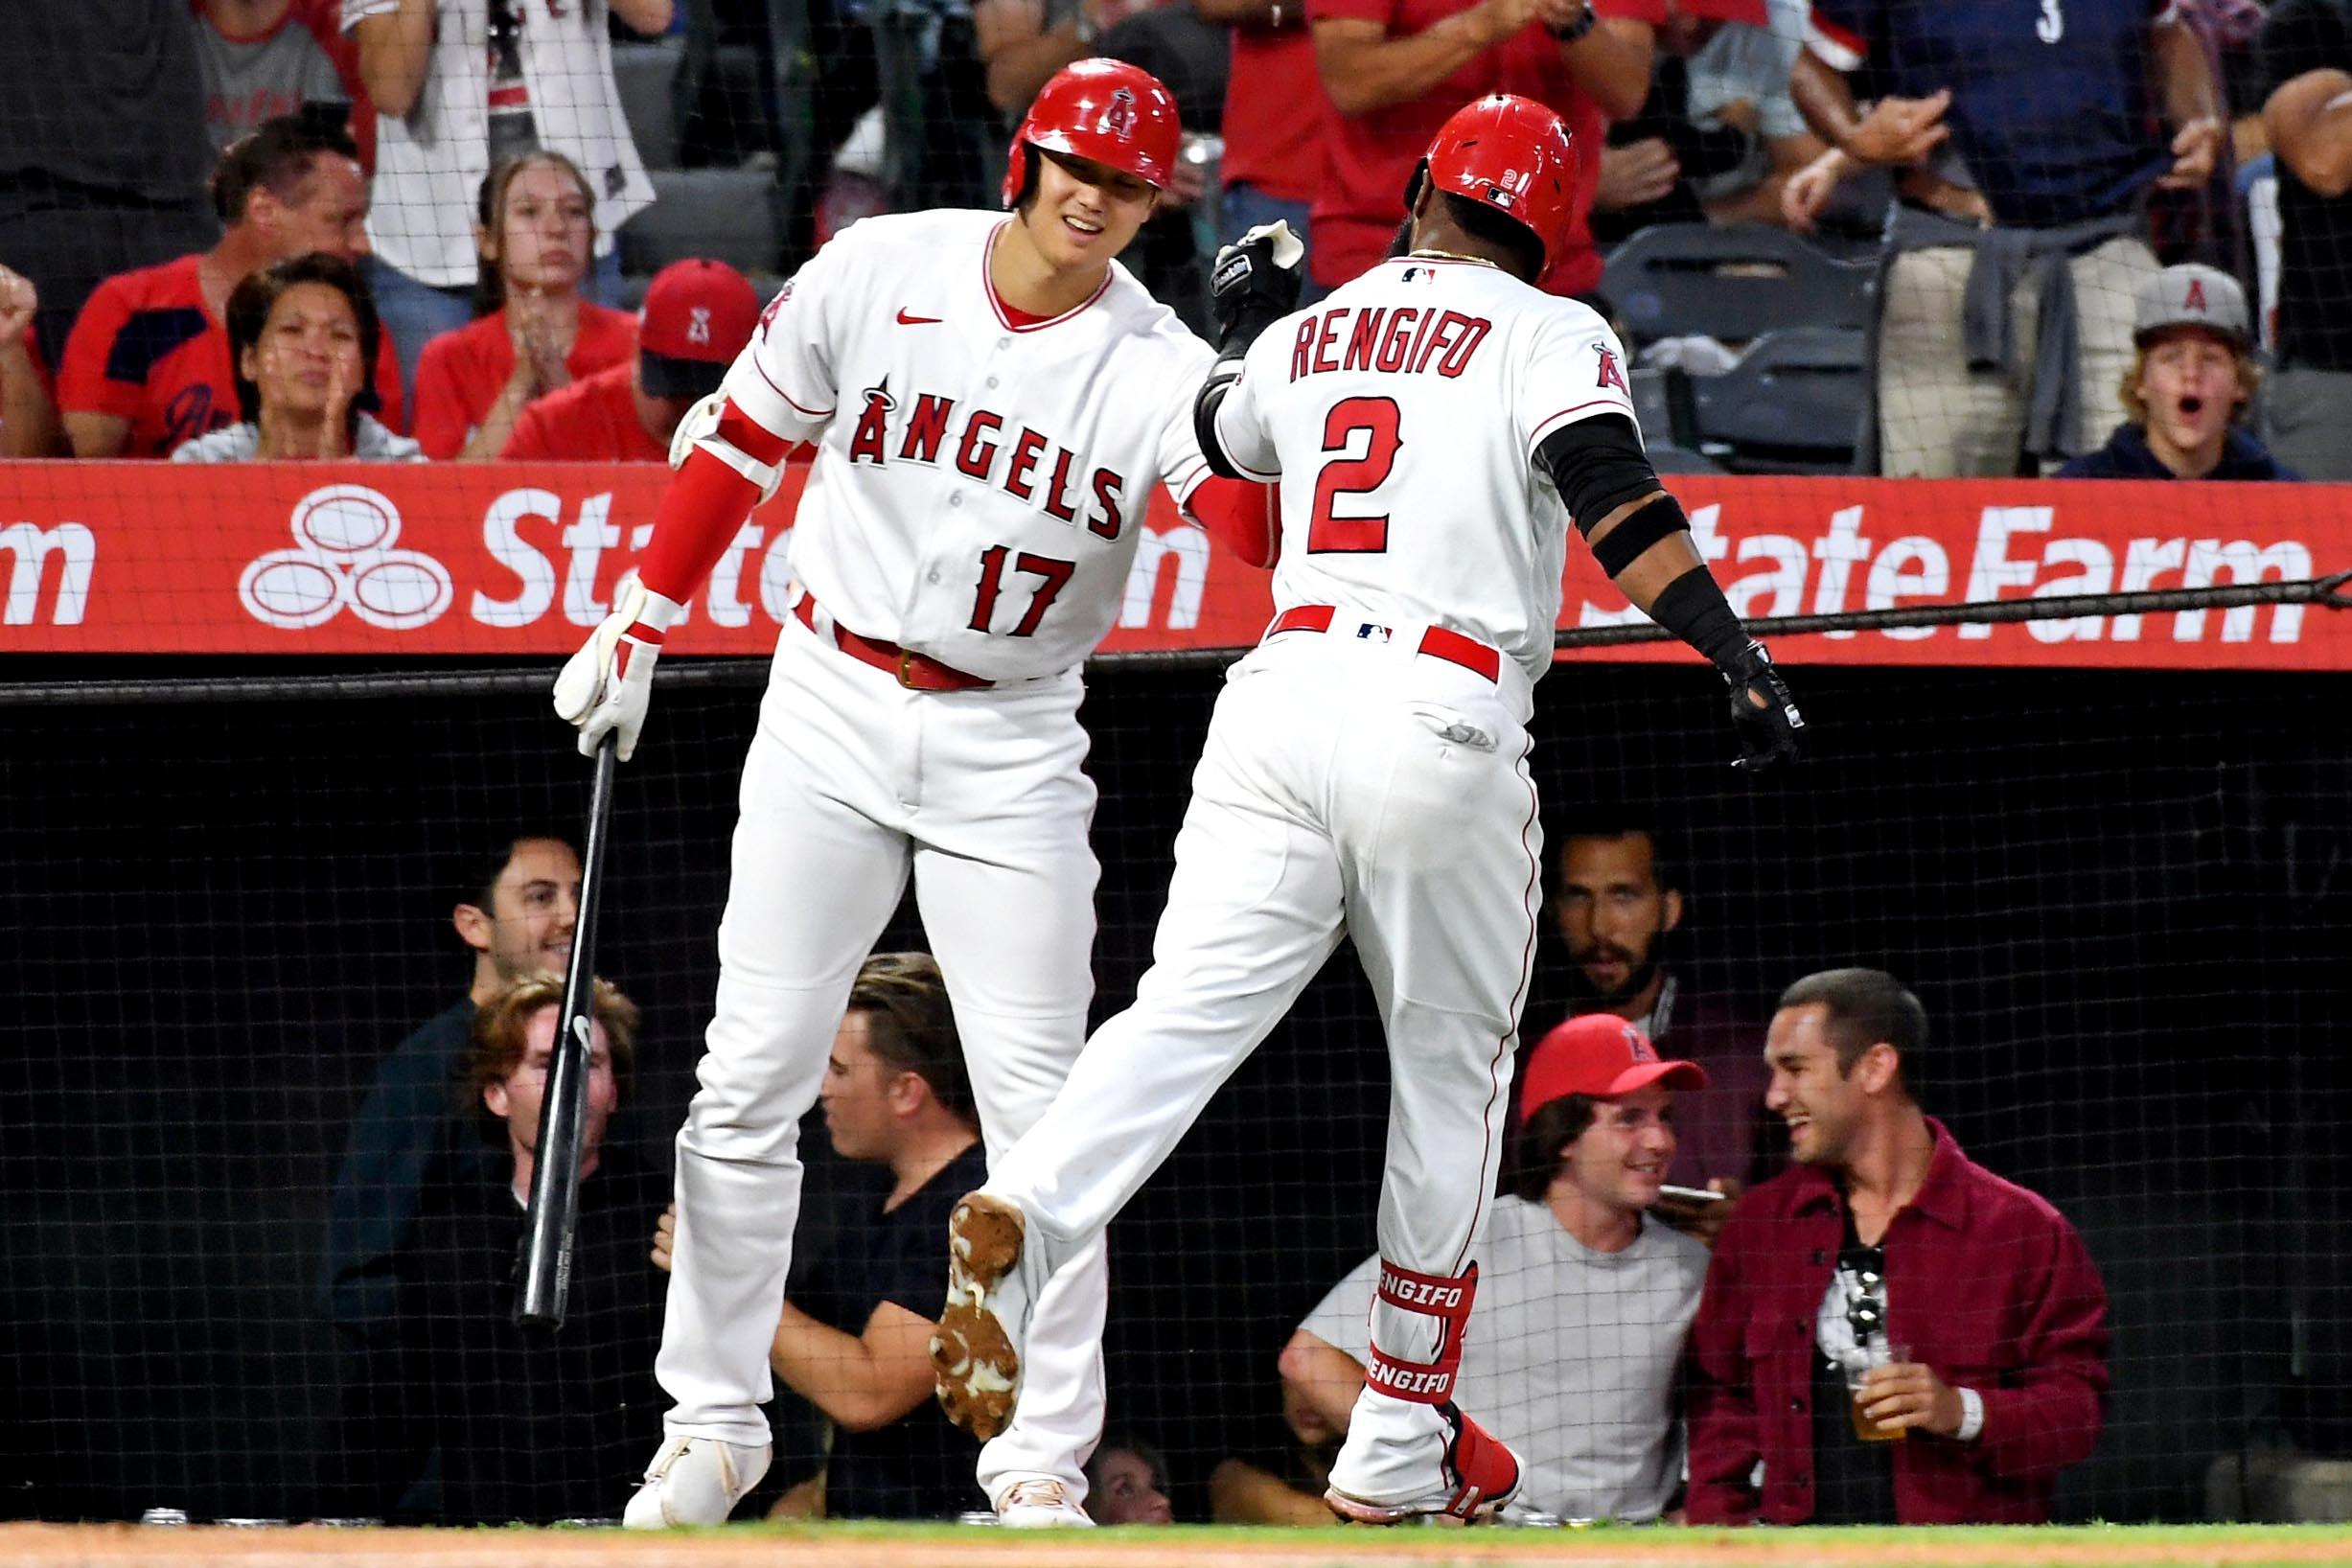 Jun 18, 2021; Anaheim, California, USA; Los Angeles Angels second baseman Luis Rengifo (2) celebrates with designated hitter Shohei Ohtani (17) after hitting a solo home run during the fifth inning against the Detroit Tigers at Angel Stadium. Mandatory Credit: Richard Mackson-USA TODAY Sports